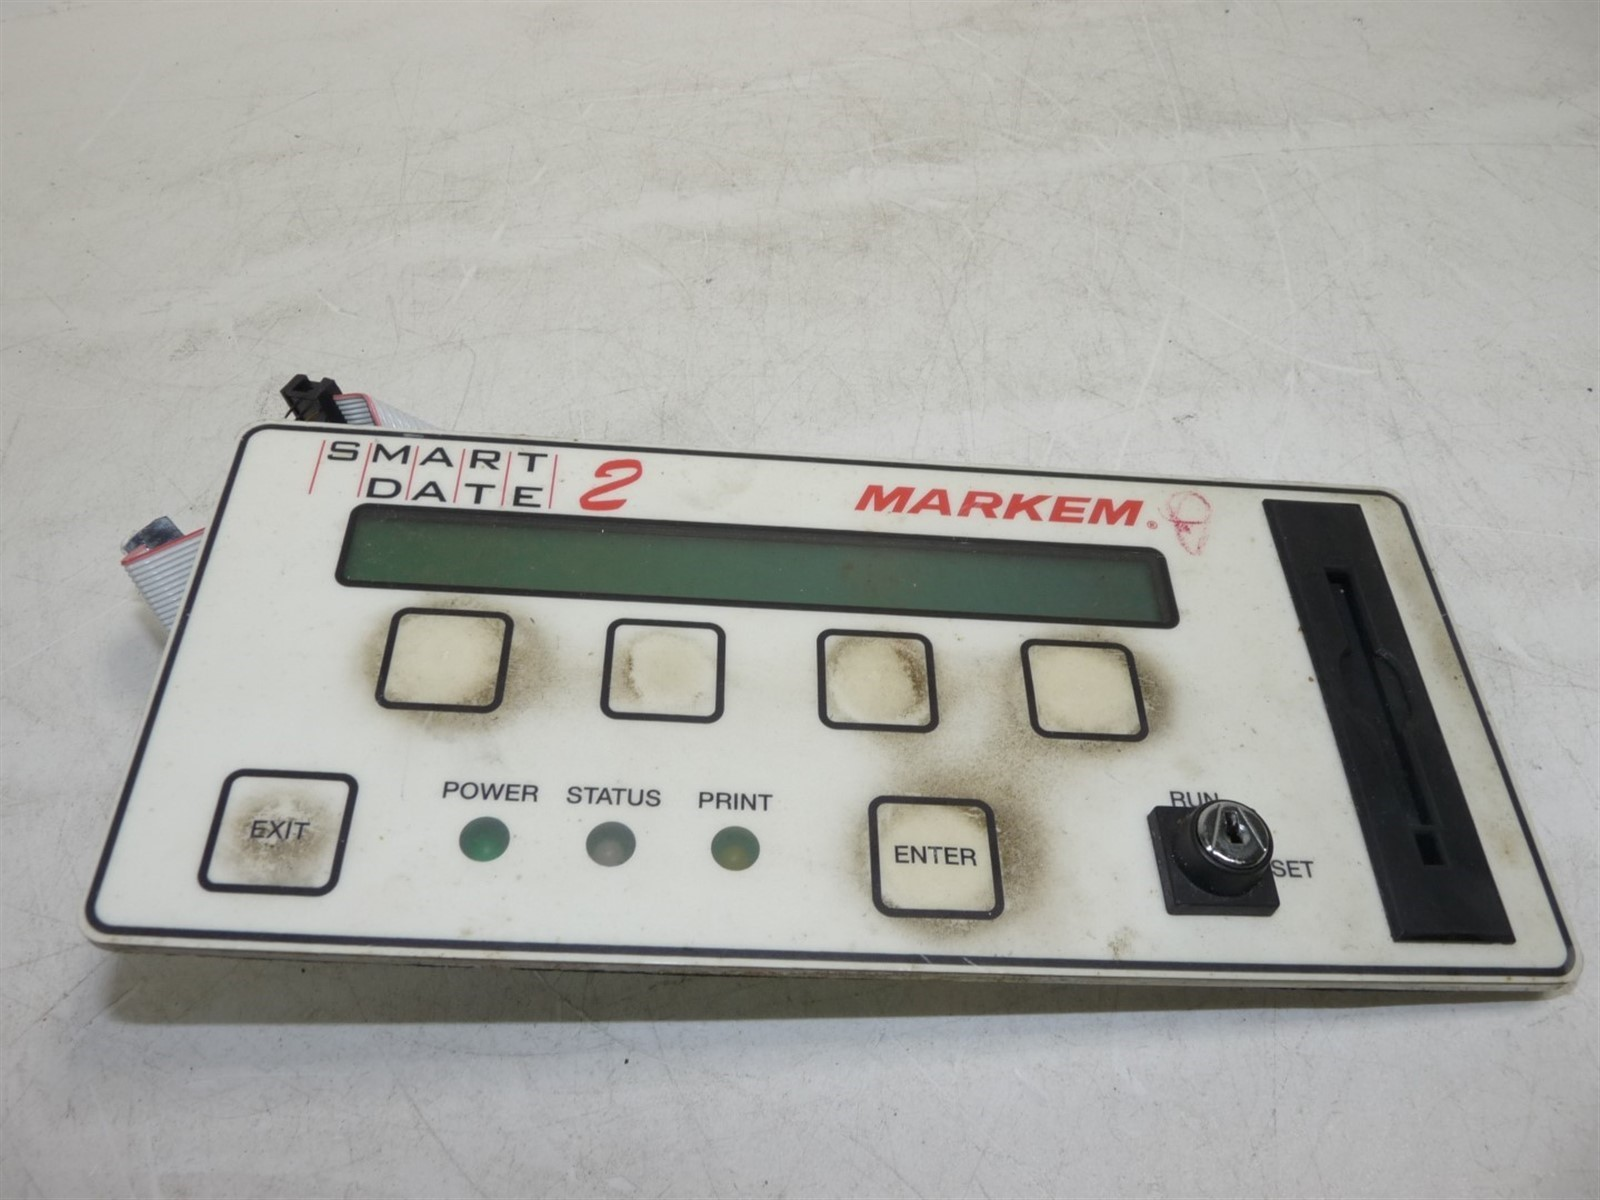 Markem Smart Date 2 Control Panel PC-4002B A 31B69A1 Untested AS-IS For  parts or not working